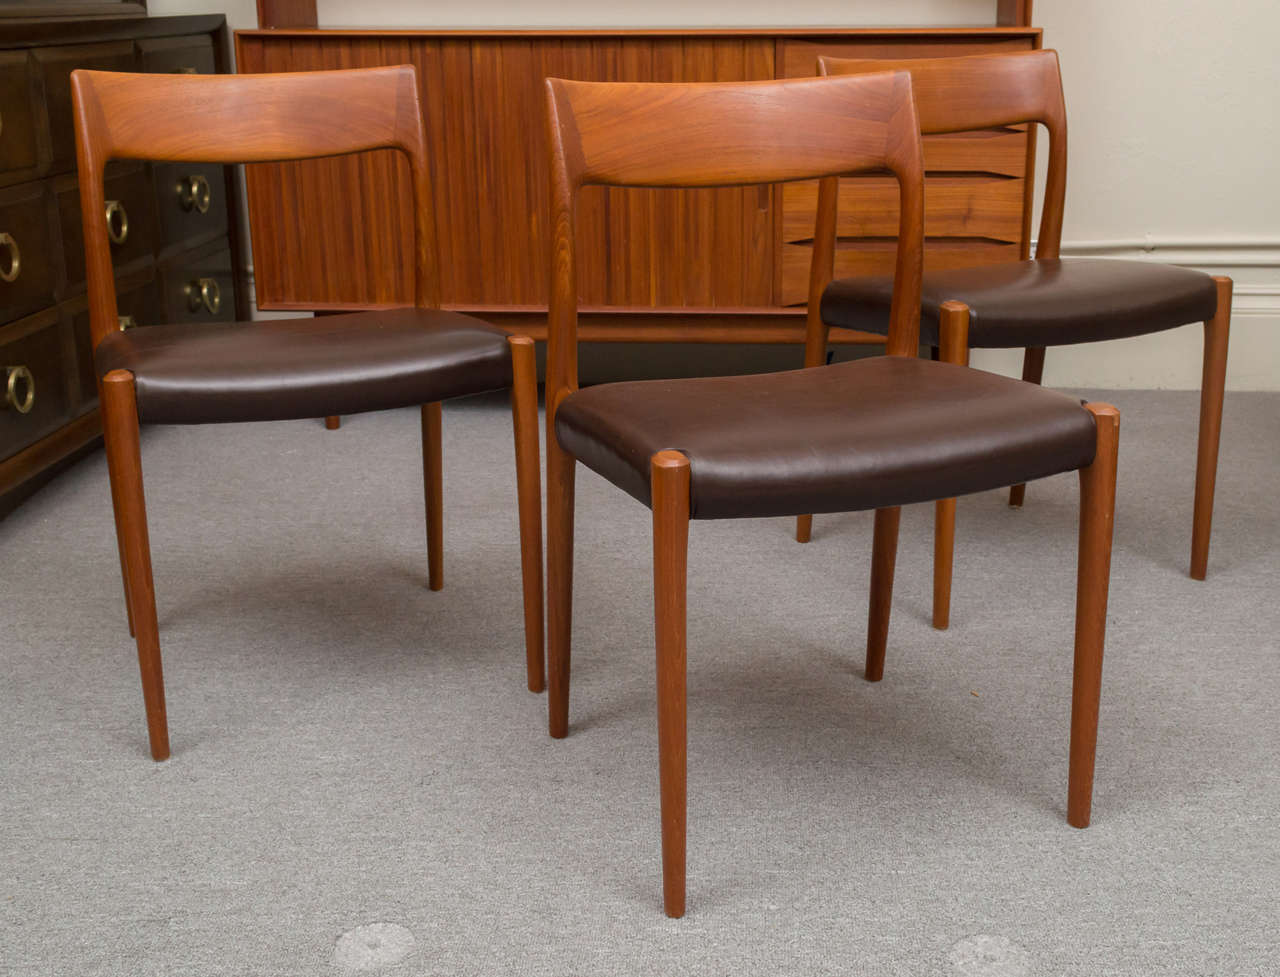 Scandinavian Modern Six Teak JL Moller Chairs With Brown Leather Seats, One  A Captainu0027s Chair